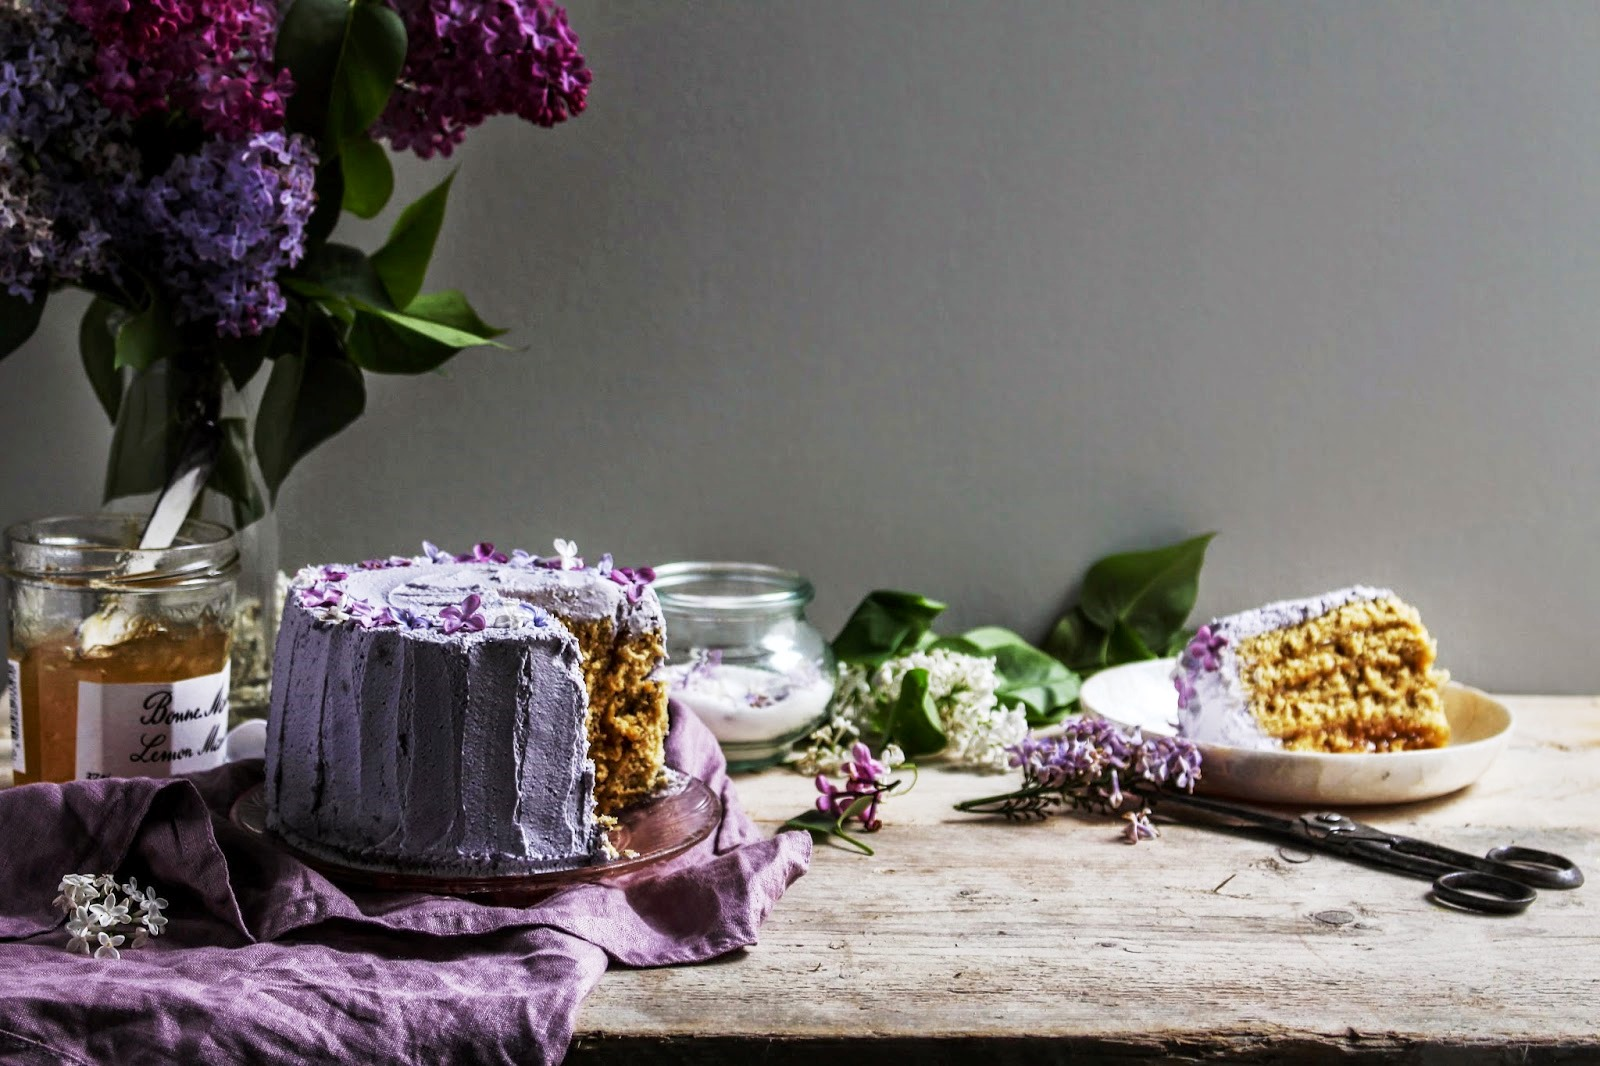 Earl Grey and Lemon Vertical Roll Cake with Lilacs